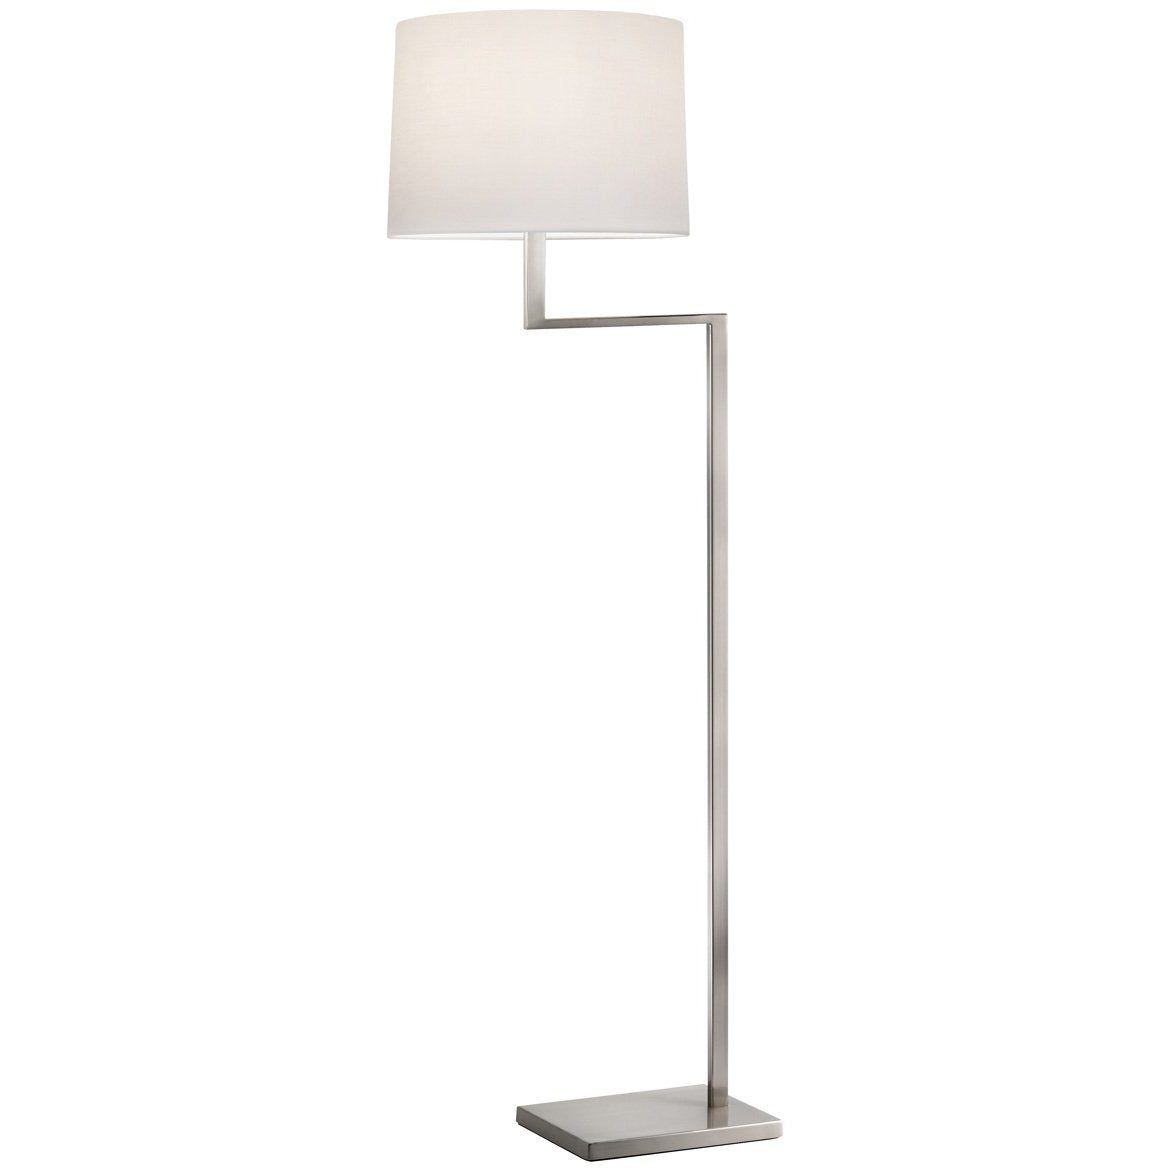 Sonneman - A Way of Light - 6426.13 - One Light Floor Lamp - Thick Thin - Satin Nickel